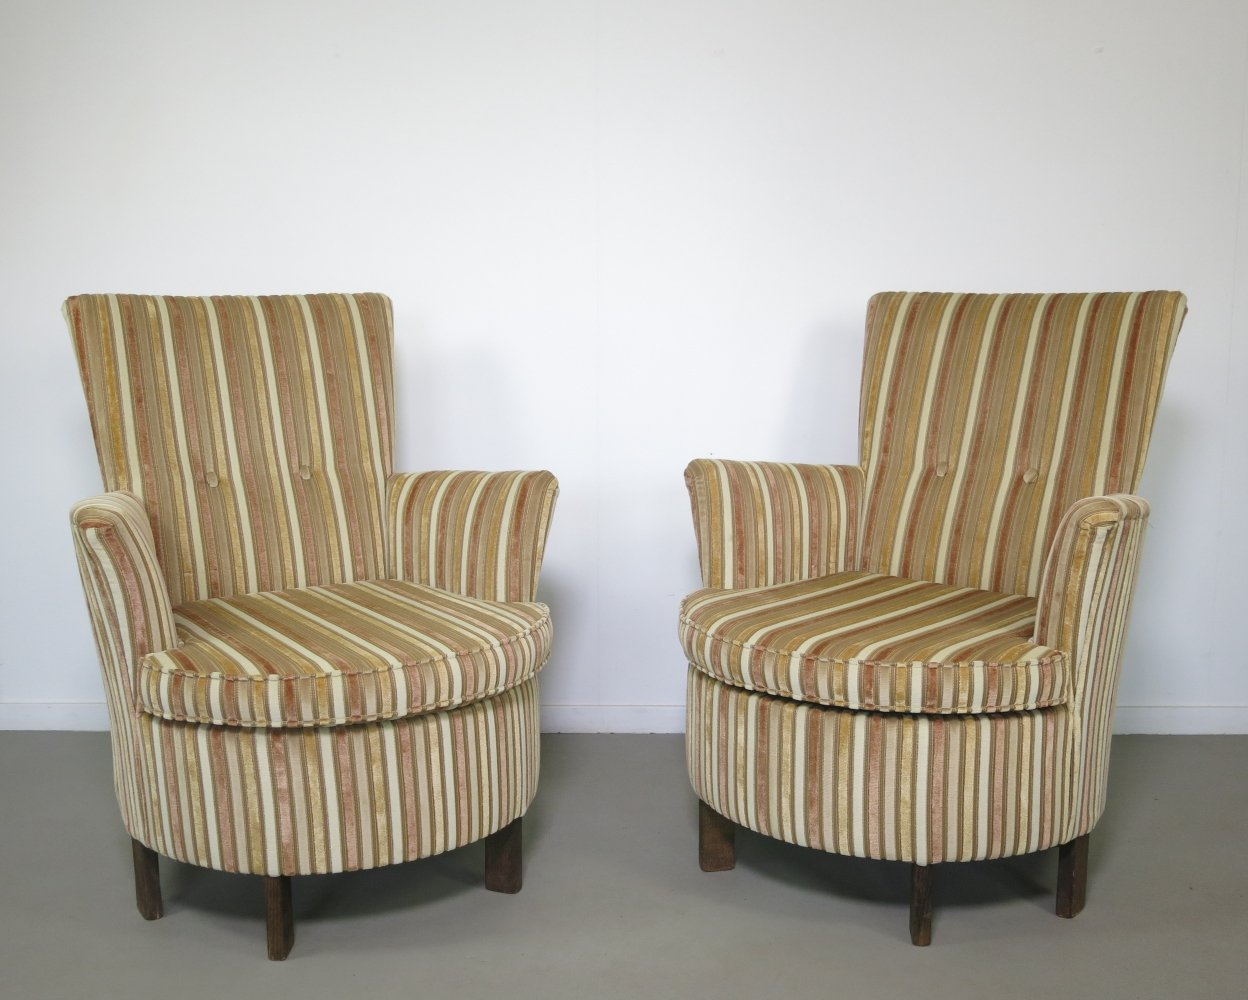 Set of 2 lounge chairs, 1950